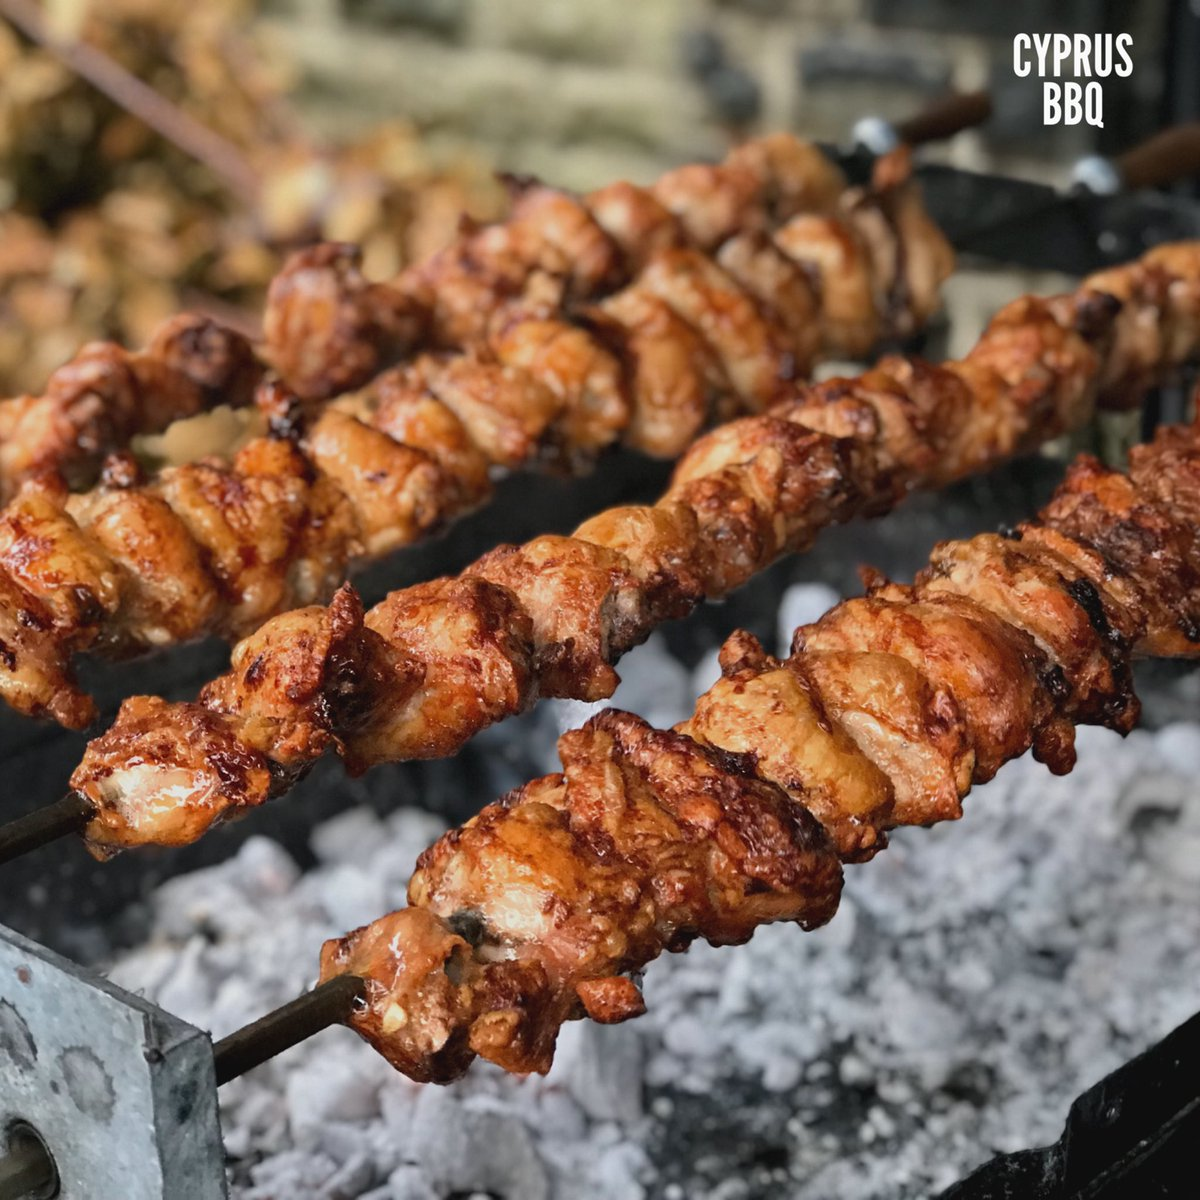 Is anyone braving the weather and having a Sunday #Souvla today? #foukou #delicious #souvla #CyprusBBQ #pork #chicken #lamb #bbq #barbecue #kebab #skewer #skewers #rotisserie #foukou #lambsouvla #chickensouvla #porksouvla #cyprusfood #sundaysouvla #meze